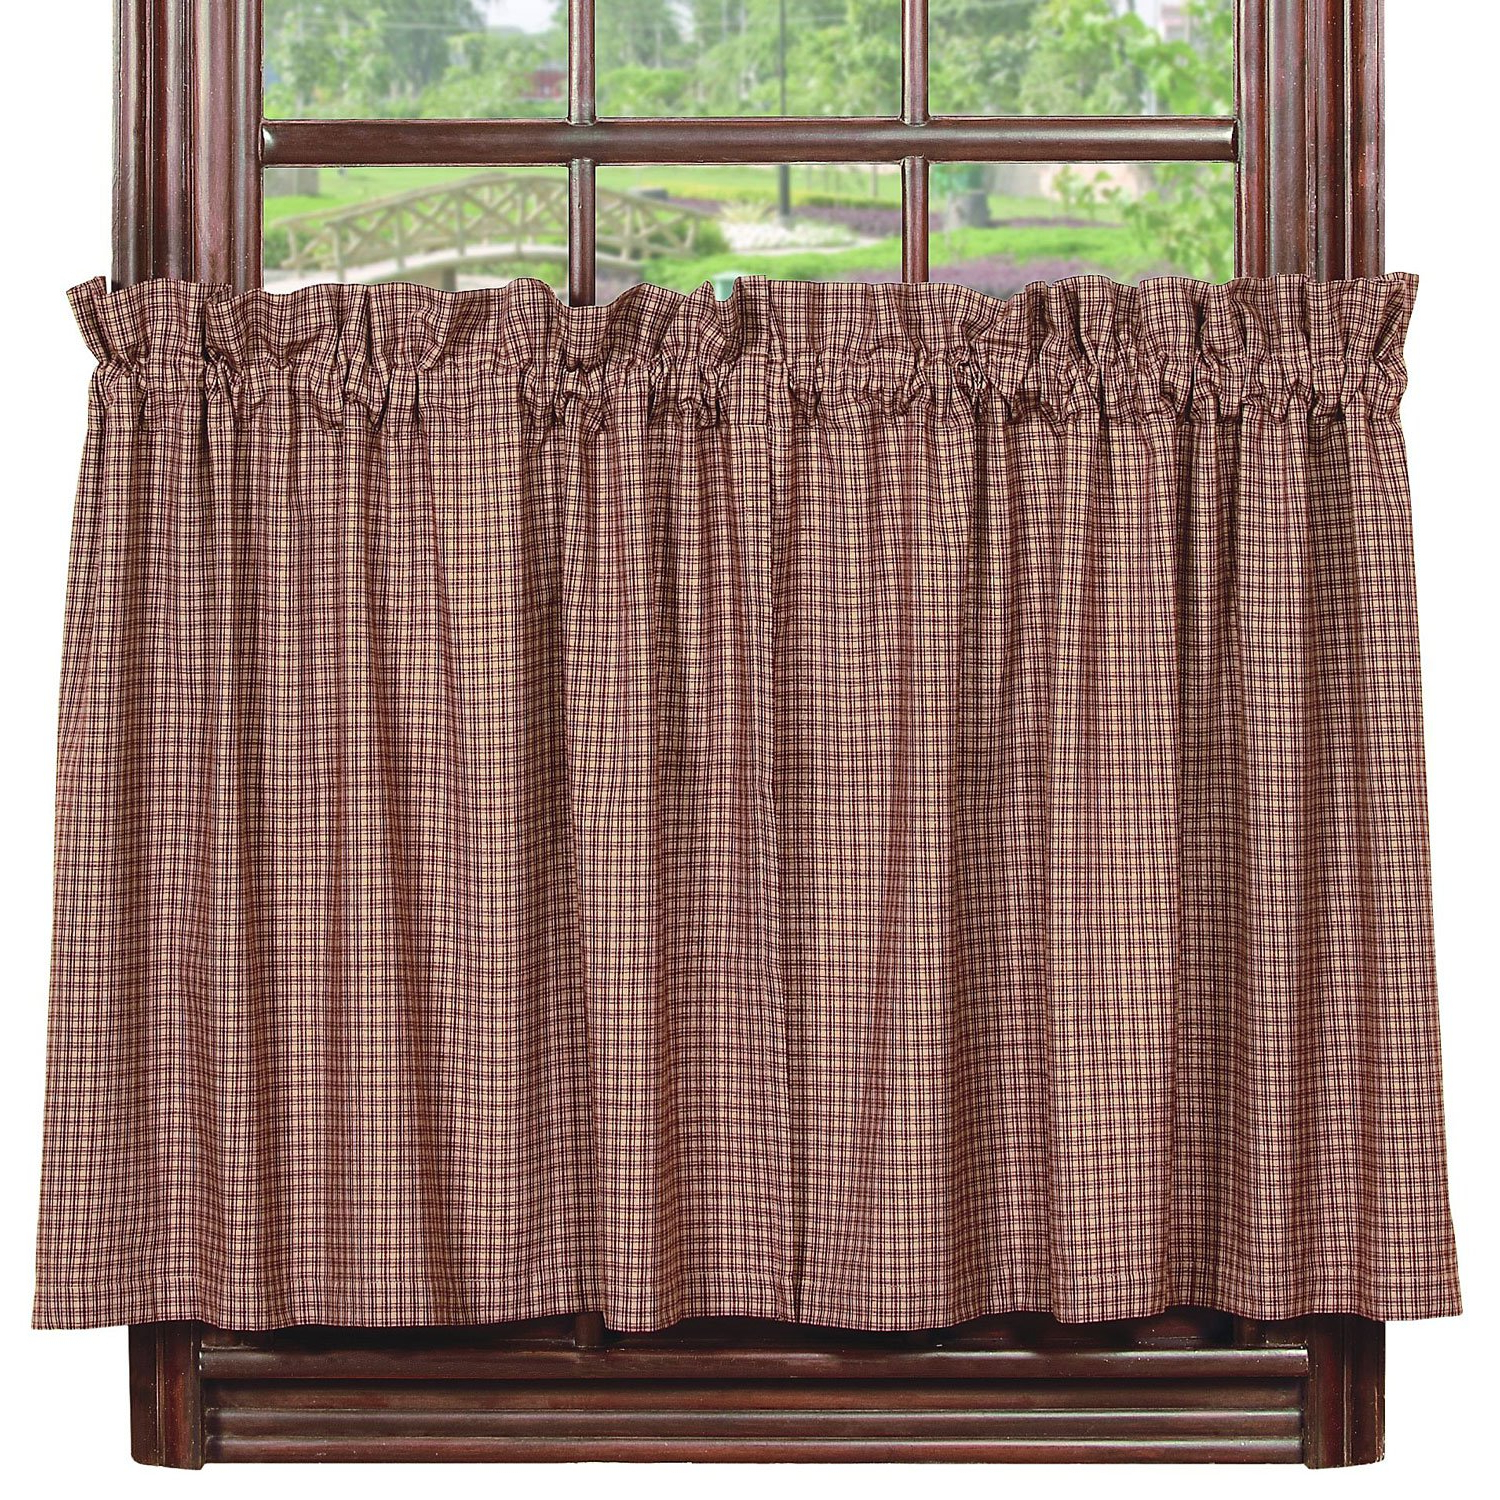 "[%ihf Pattern Vintage Star Wine 24"" Tier 100% Pure Cotton Fabric Window Curtains Tiers 72 X 24 Inches Within Most Up To Date Traditional Tailored Tier And Swag Window Curtains Sets With Ornate Flower Garden Print